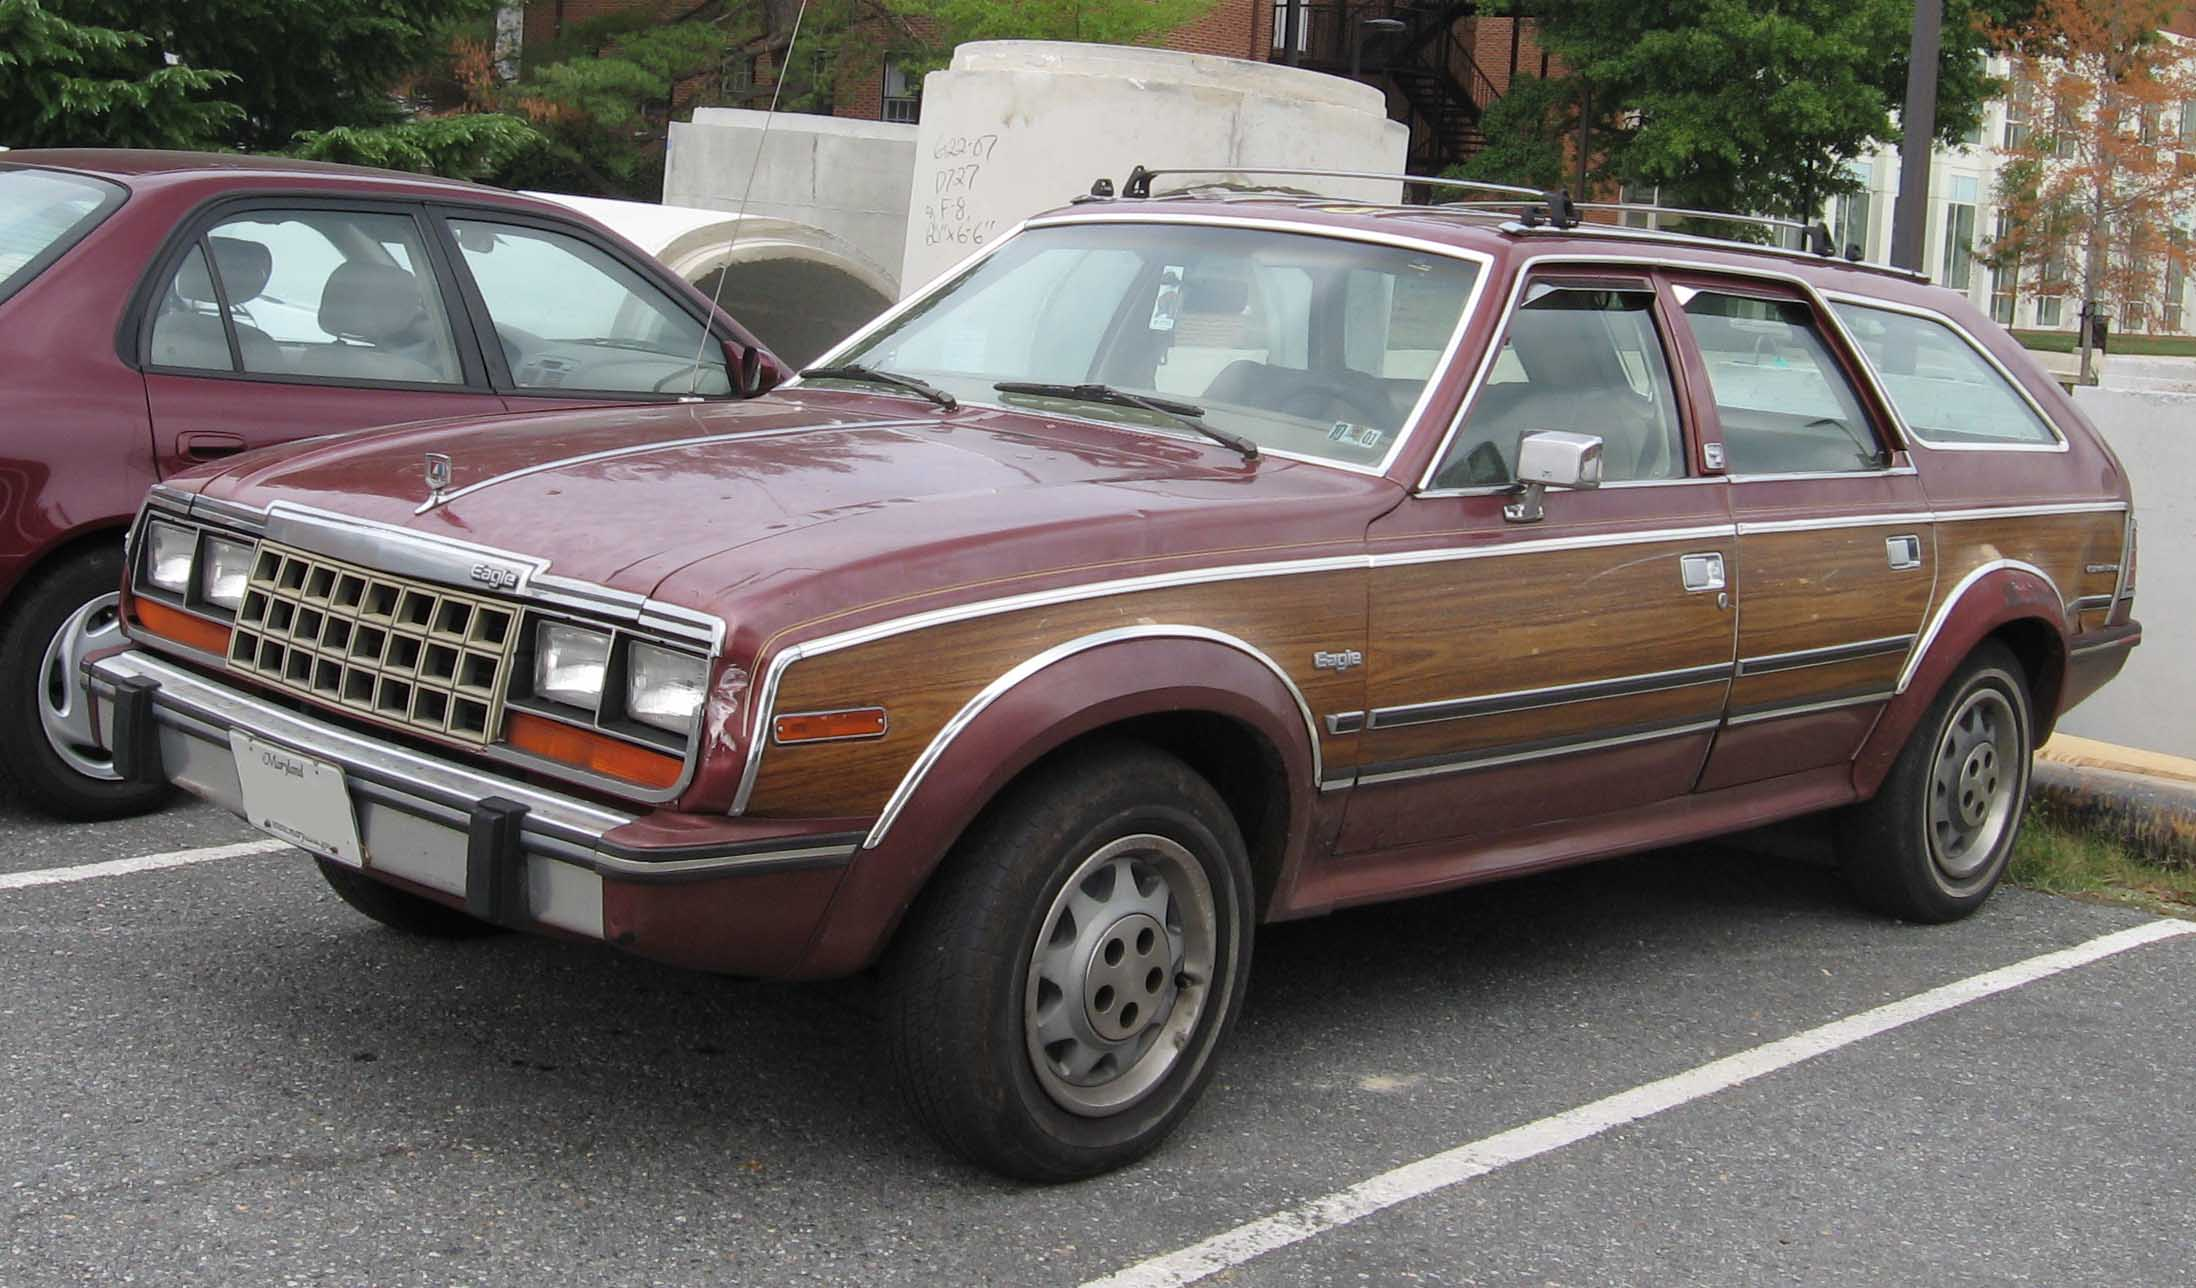 Amc eagle photo - 1